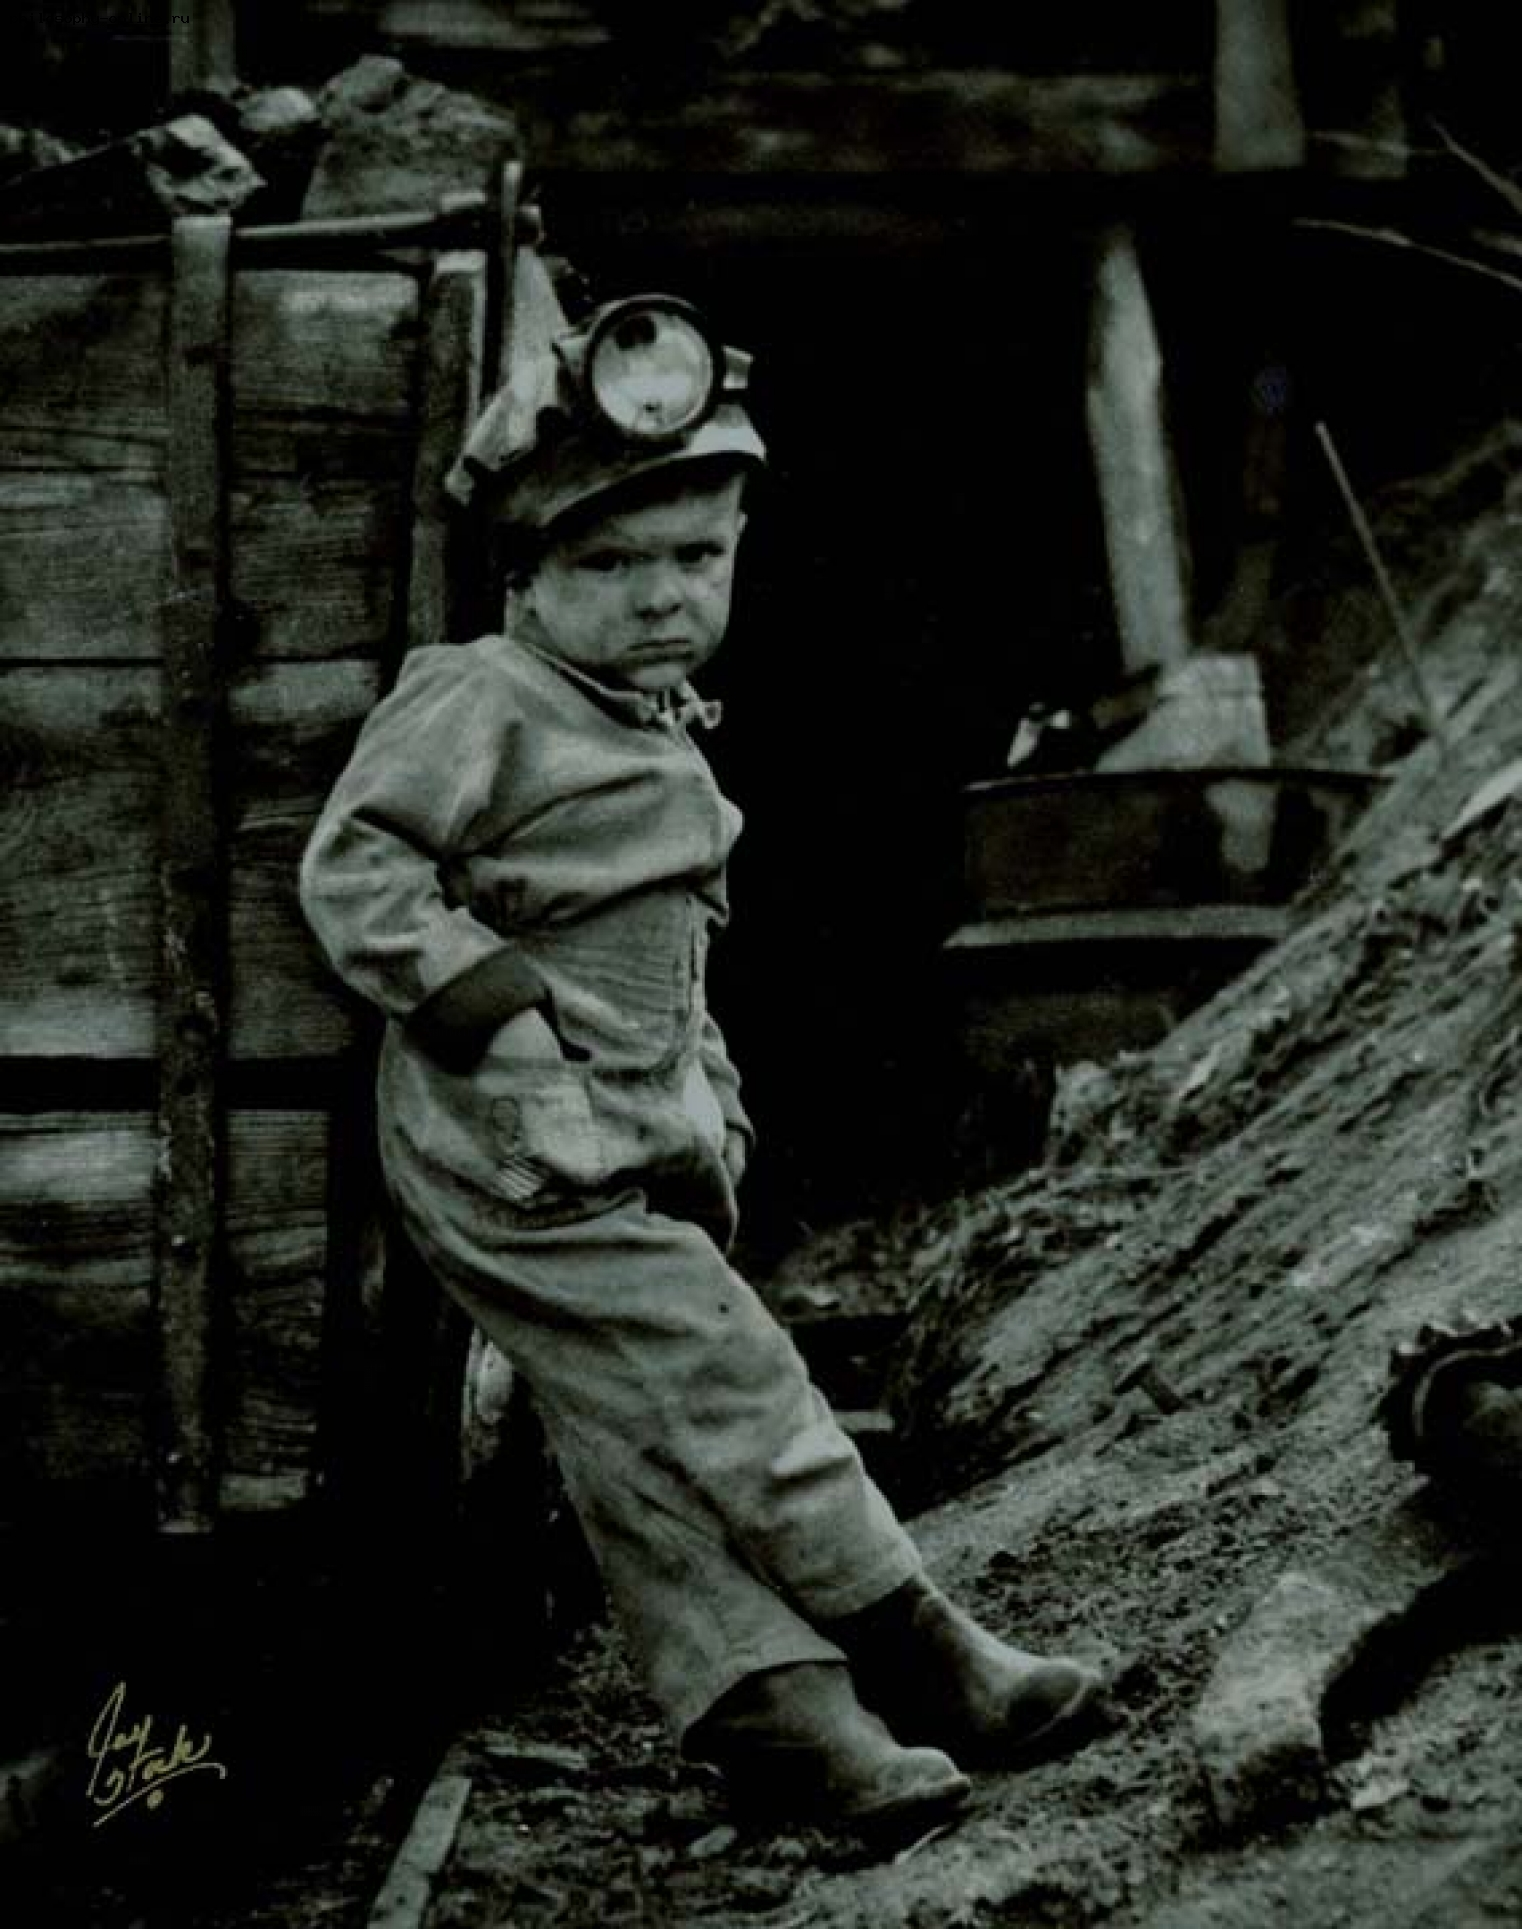 children working in coal mines in the industrial revolution Women played a role in the industrial revolution they mainly served as workers and often worked in the textile industries and in piecework shops some women also worked in the coal mines at.